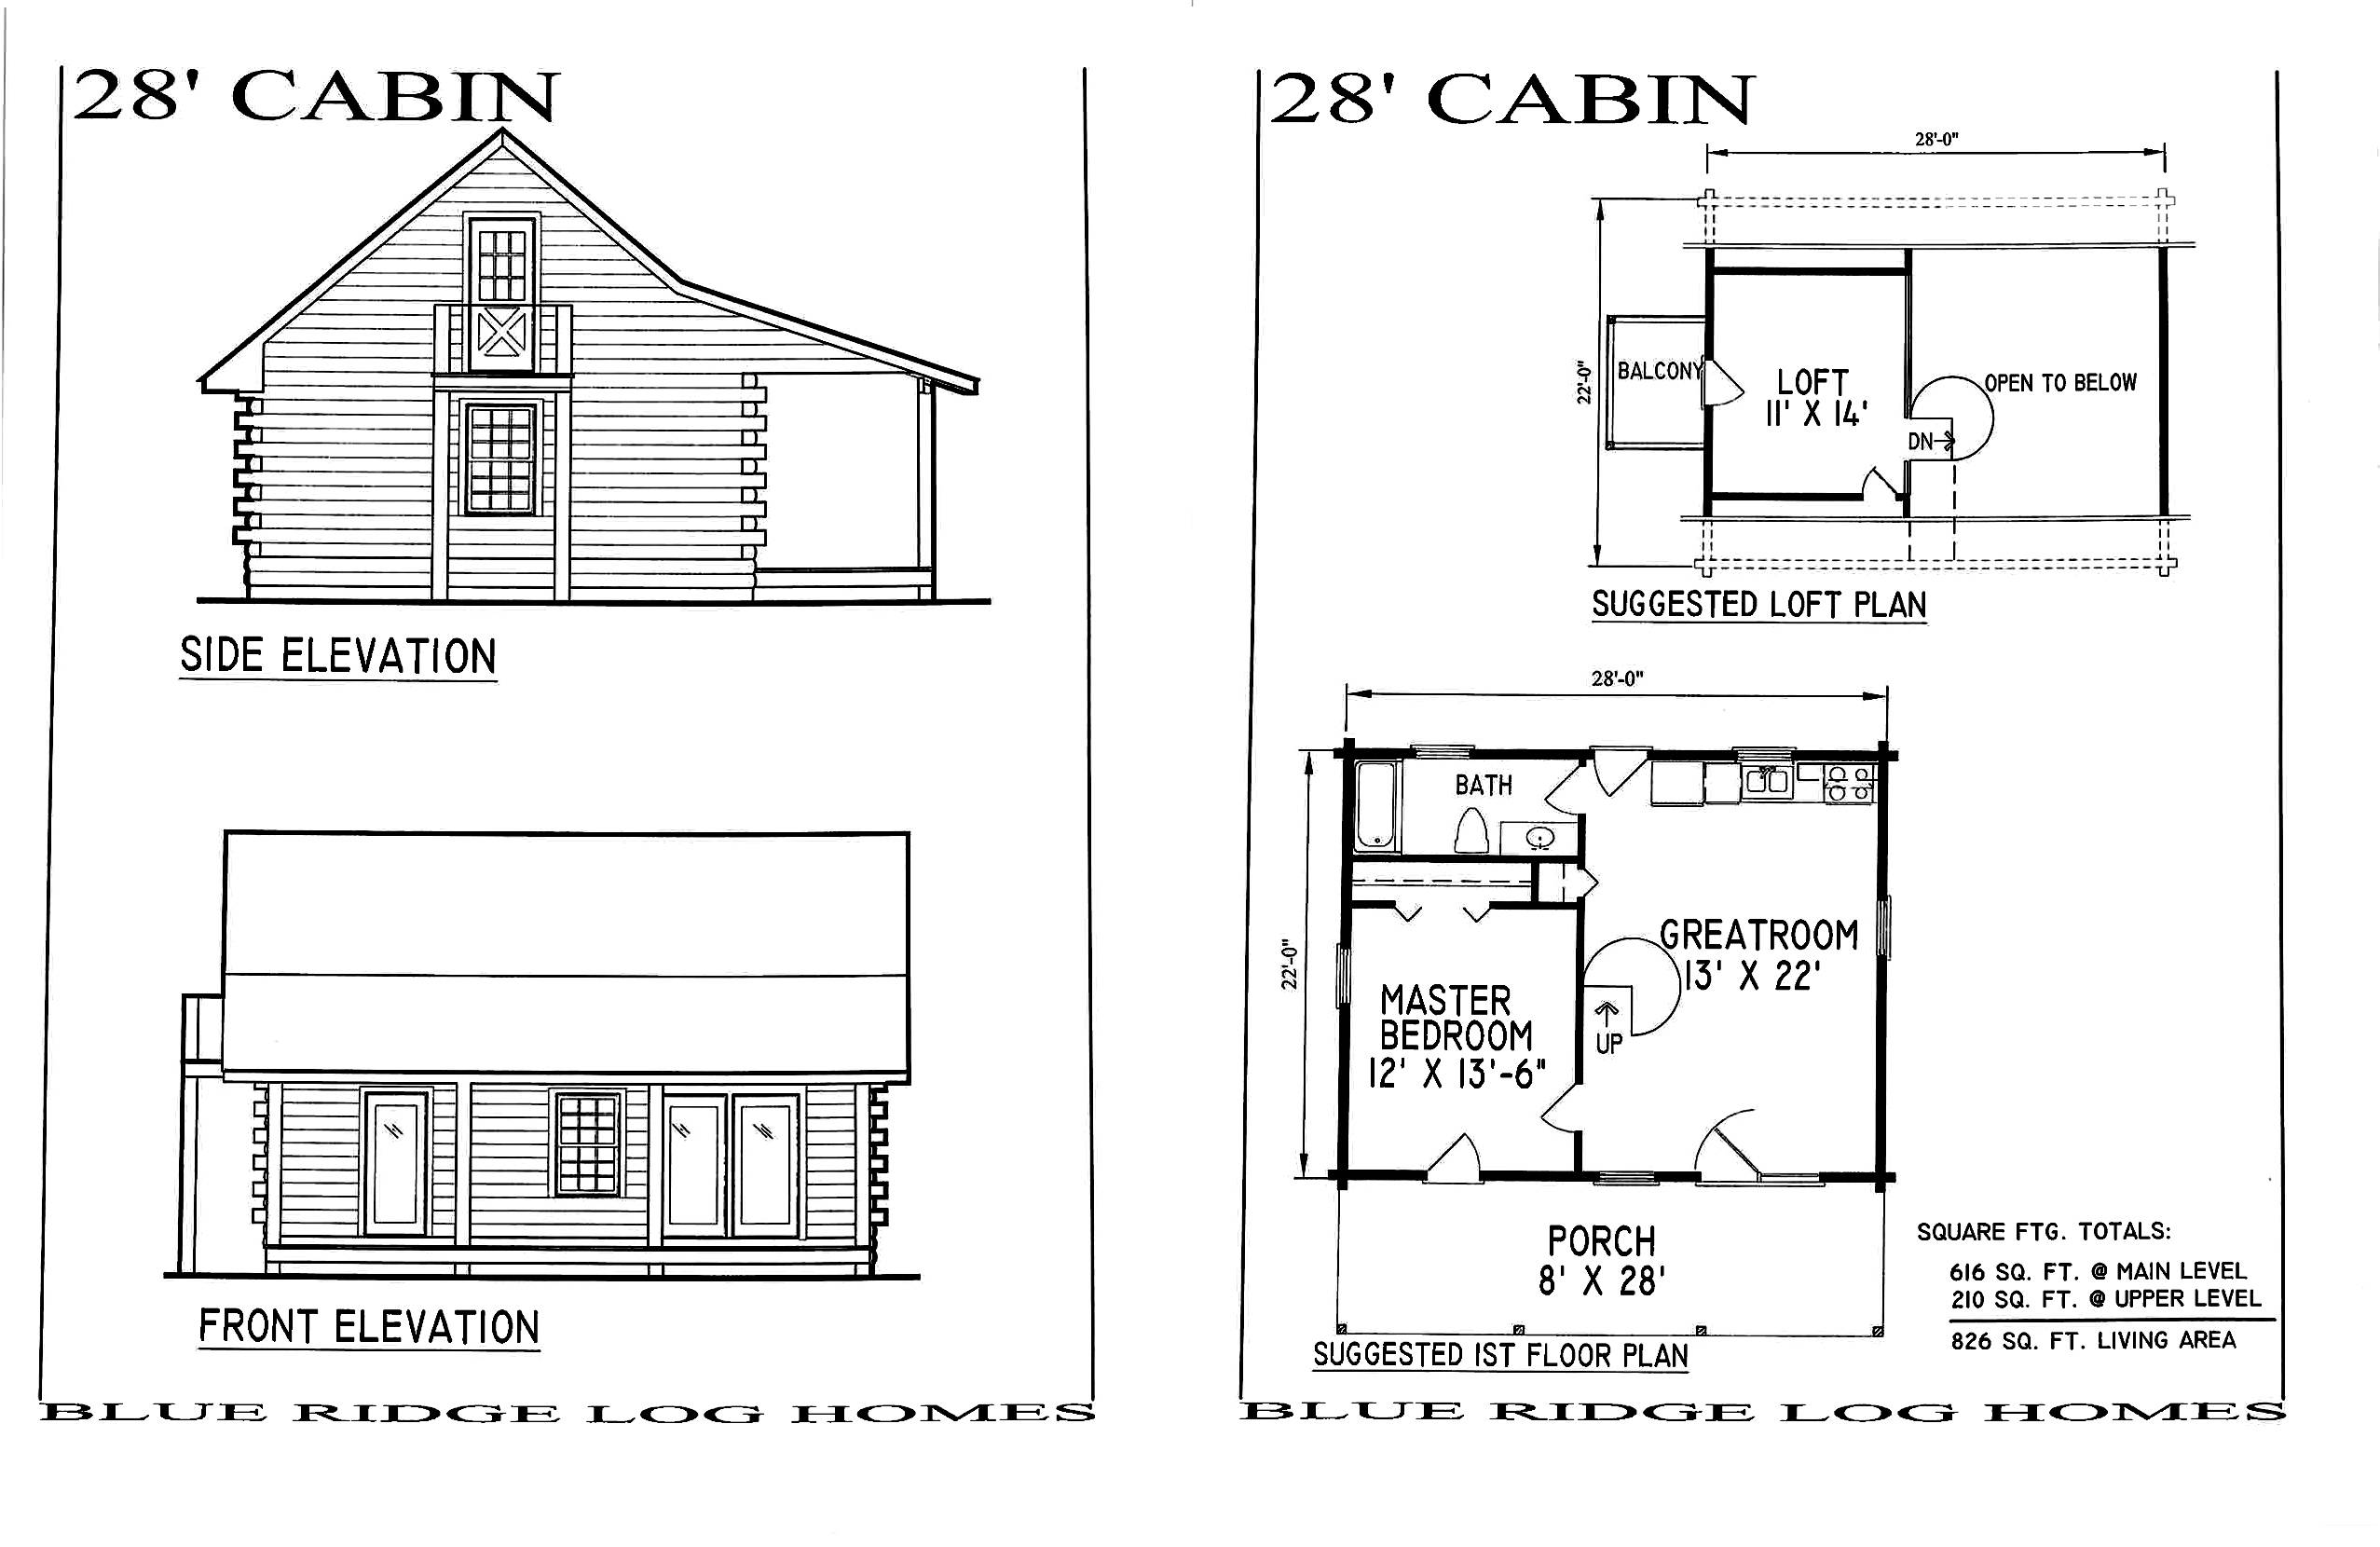 software house plans great drawing house plans for dummies home great floor plans small houses software house plans with software house plans